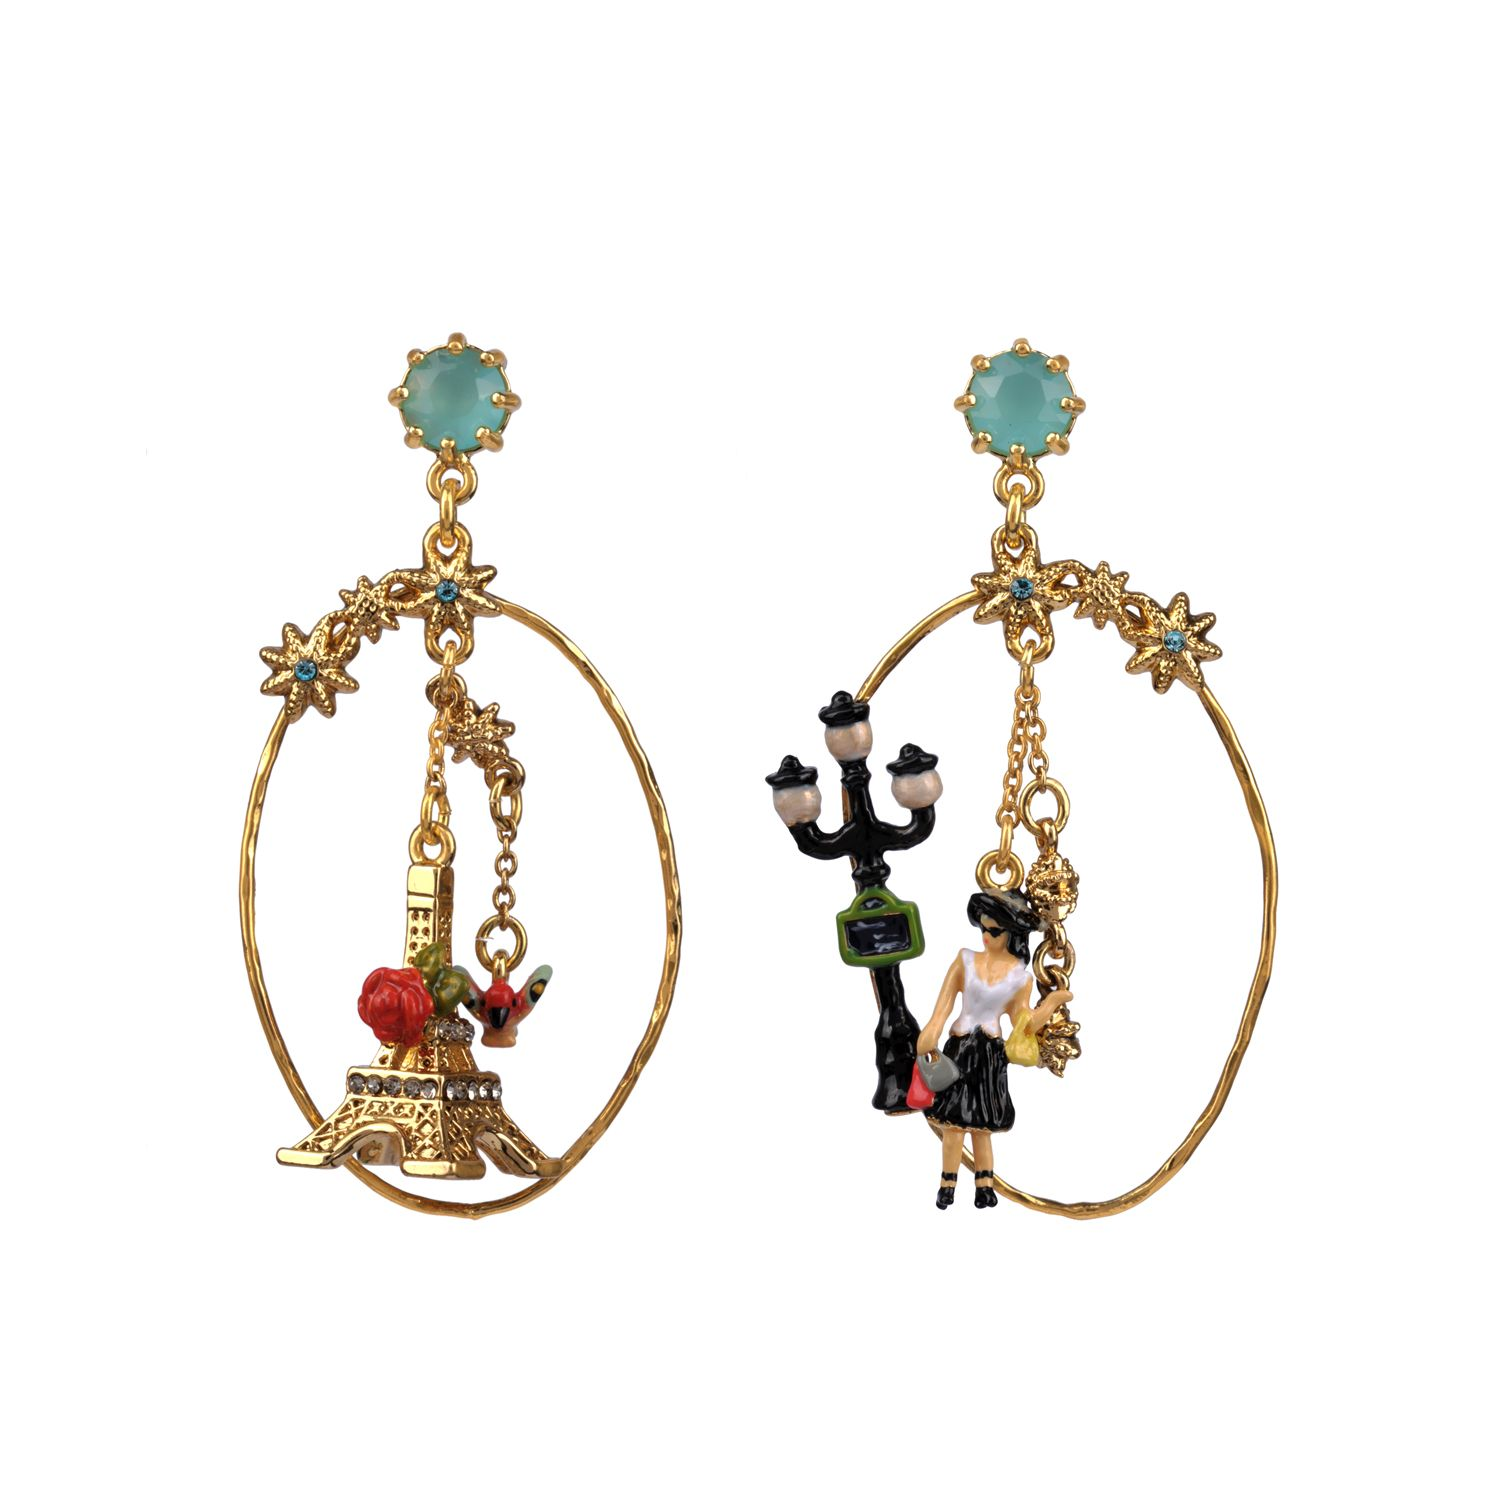 Paris mon amour earrings